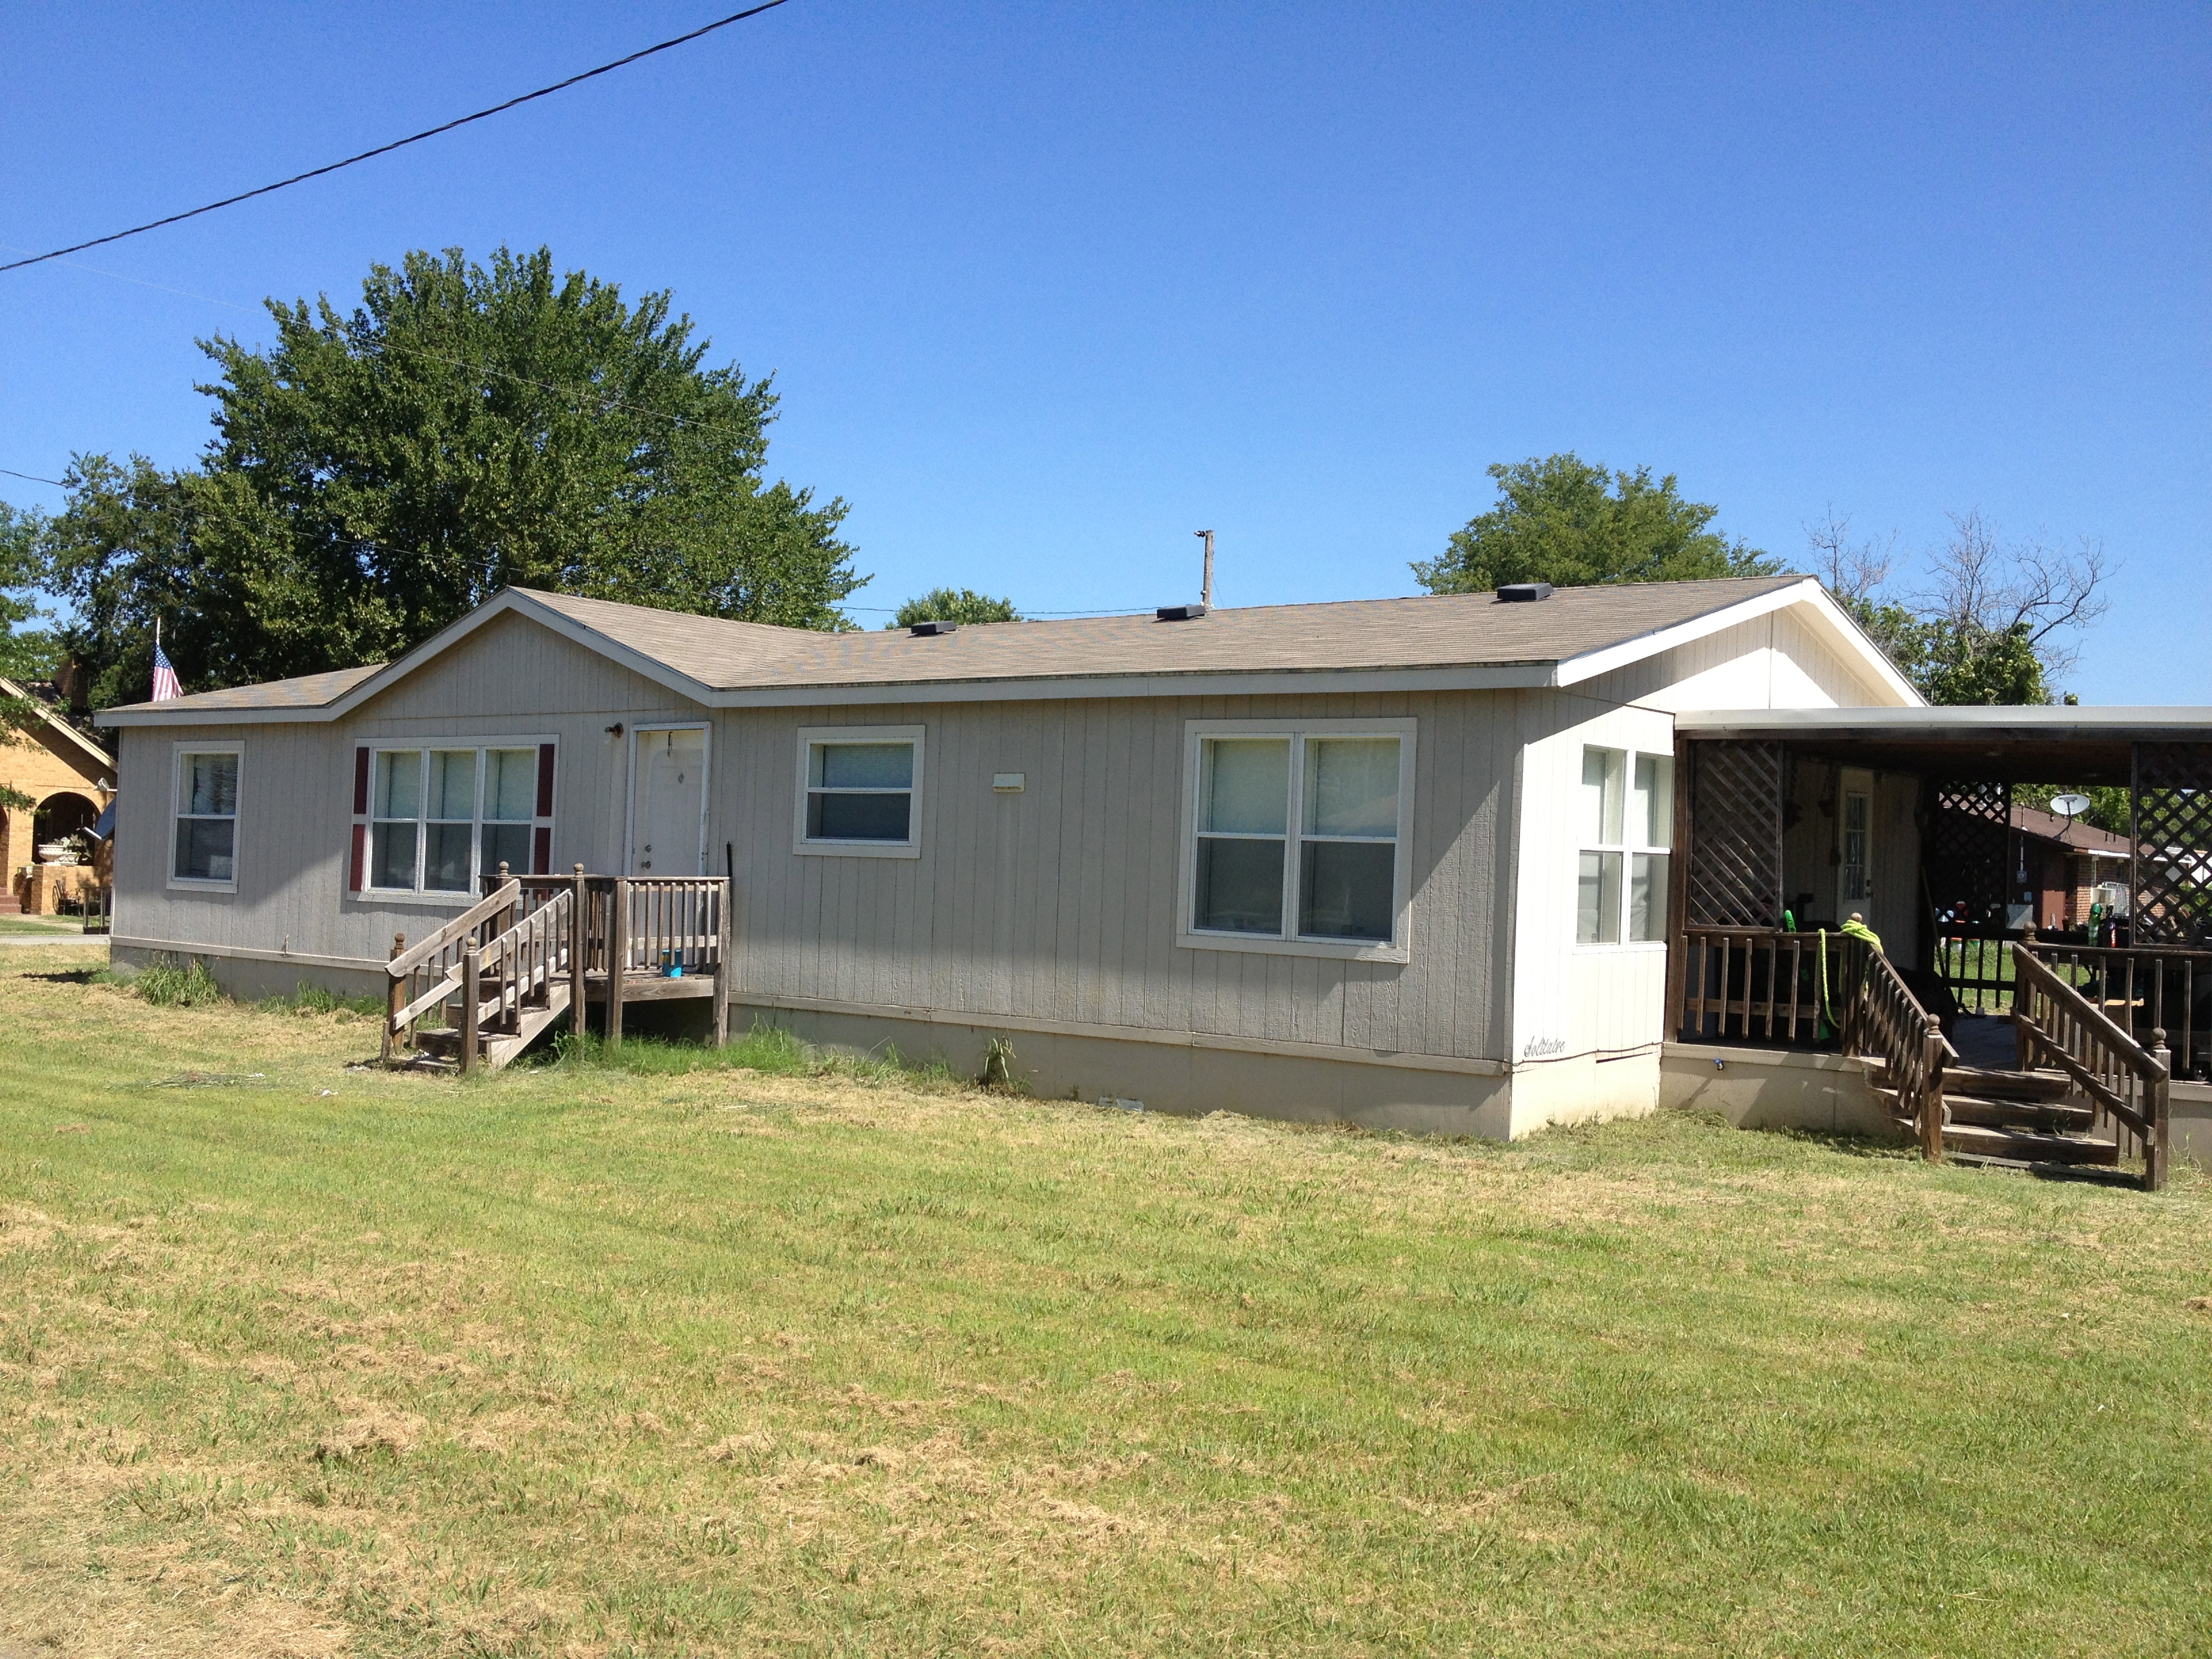 Mobile home for rent in allen ok 74825 for Three bedroom mobile homes for rent